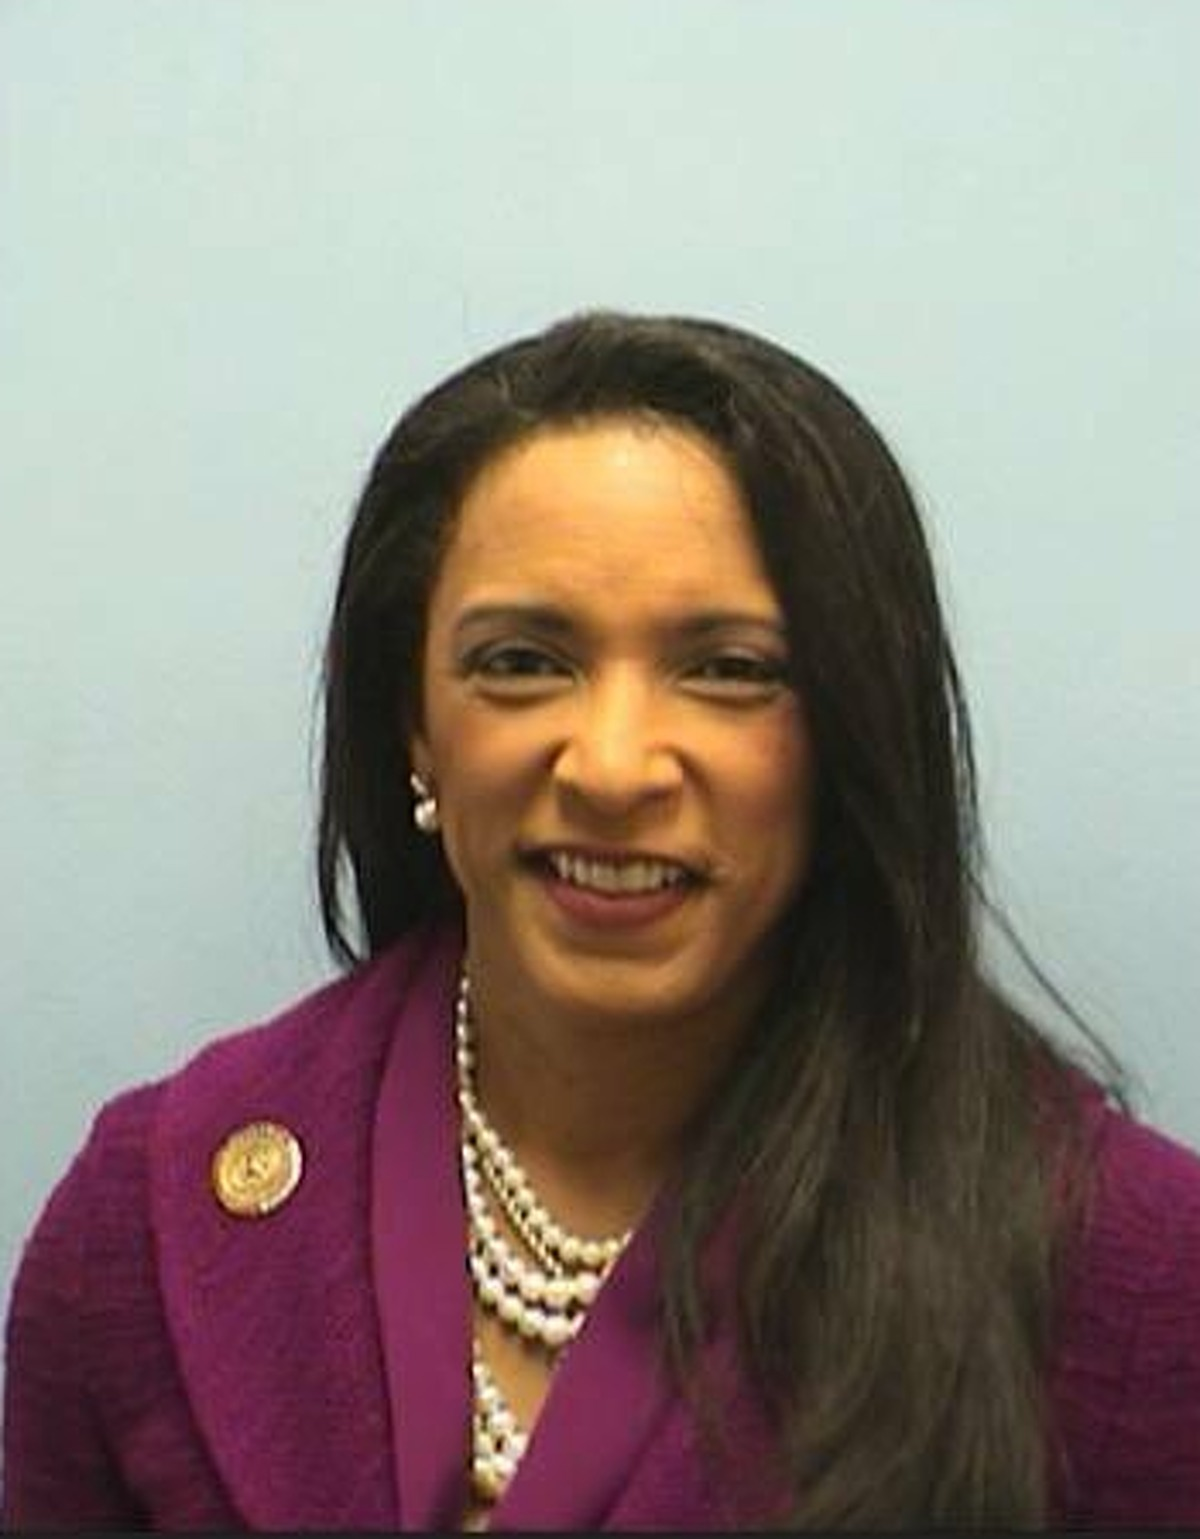 State Rep. Dawnna Dukes, D-Austin, is pictured after being booked on corruption charges in Travis County.